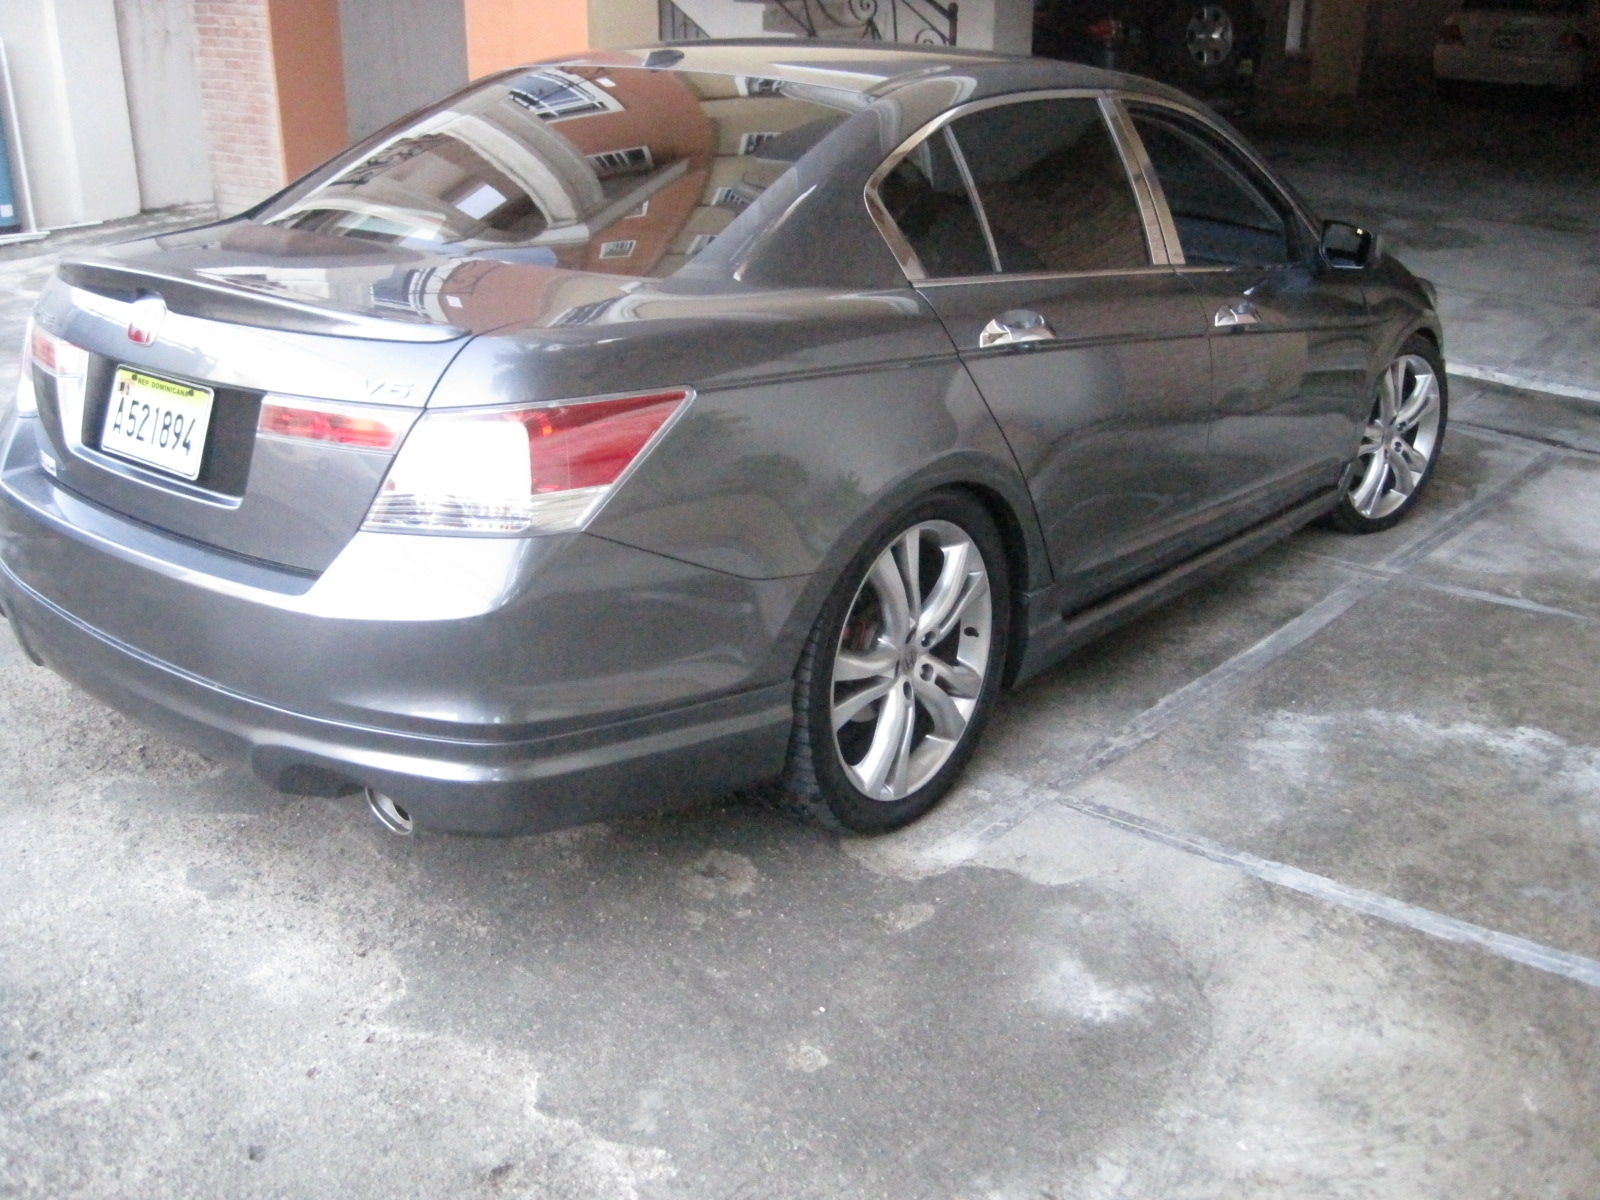 makiavelus2pac 2008 Honda Accord 12140302